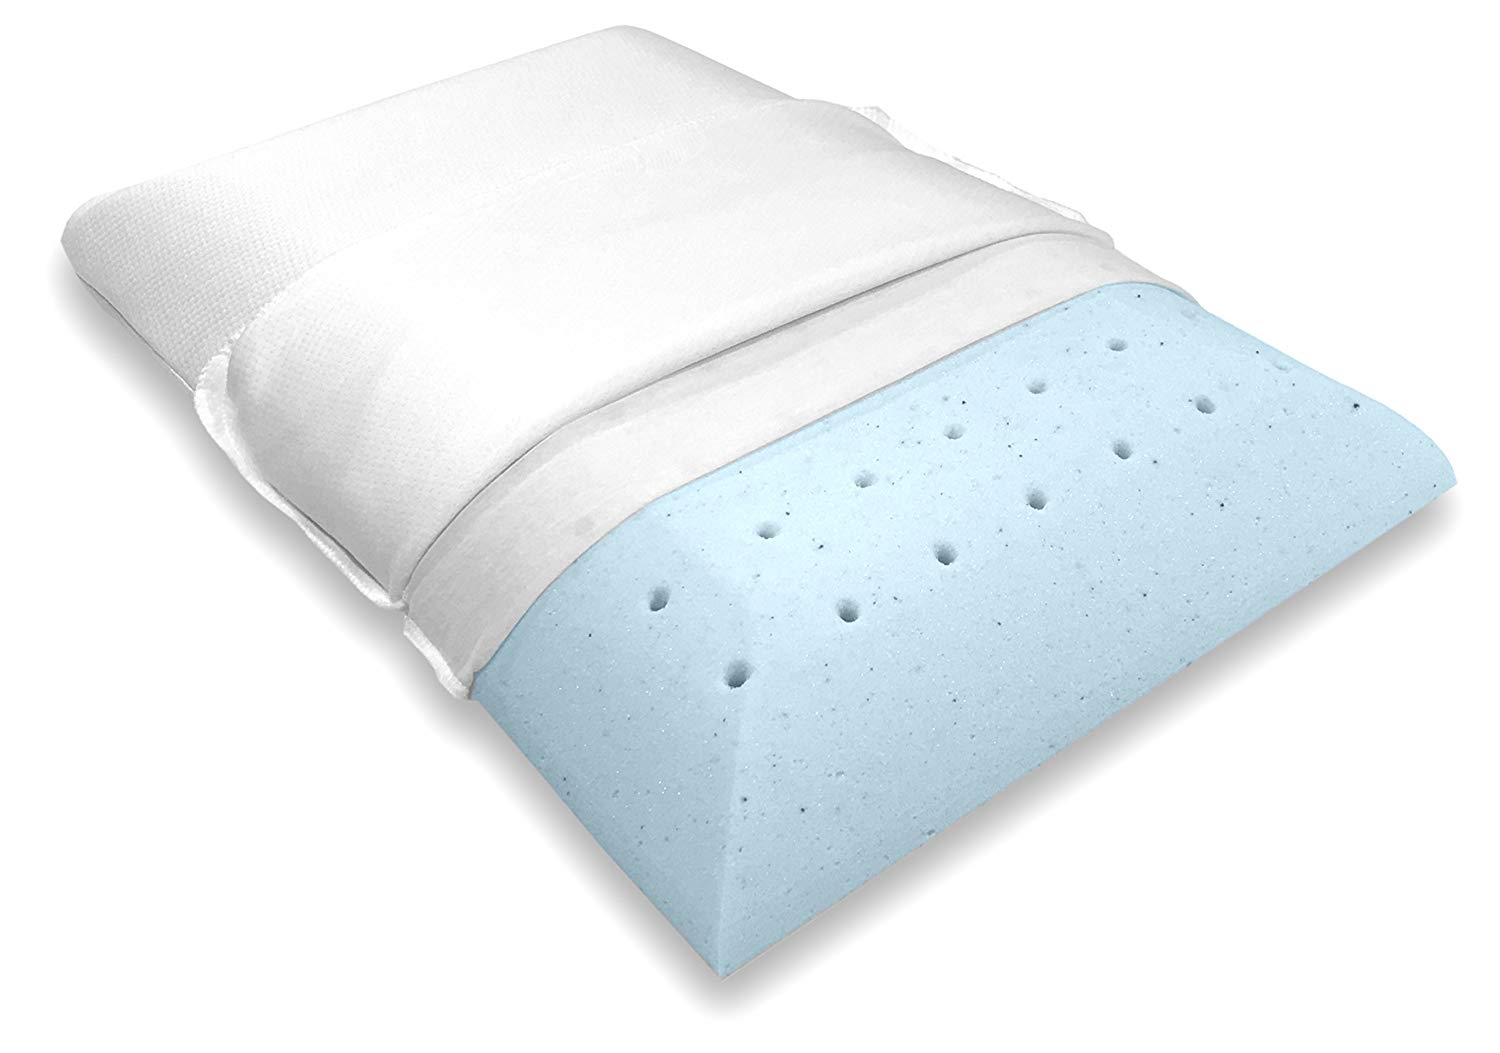 Bluewave Bedding Flat Pillow Review by www.snoremagazine.com